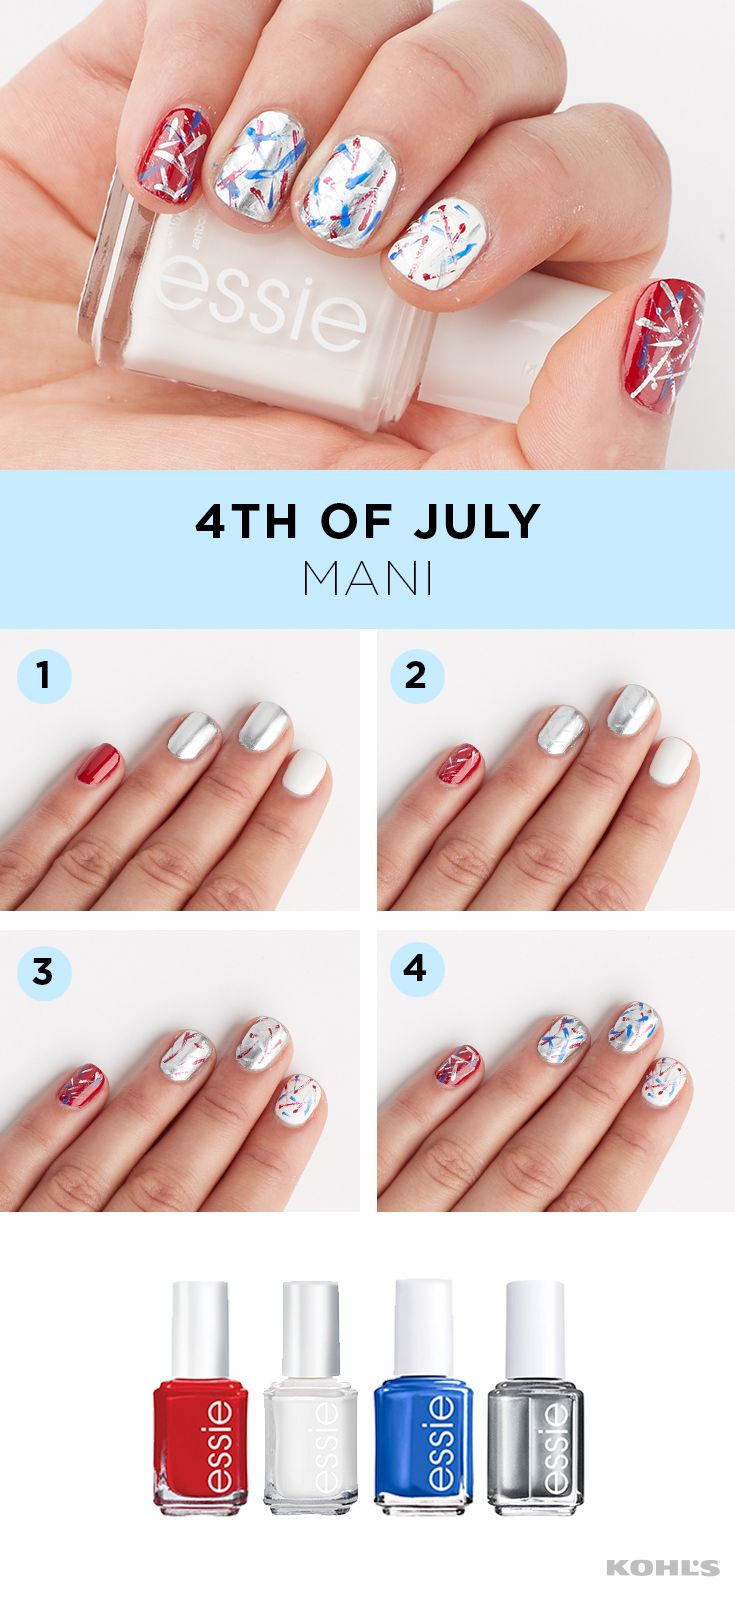 If your manicure isn't red, white and blue, does it even count as the 4th of July? We don't want to find out. A firework-inspired Independence Day manicure is fun, festive and oh-so-easy to do yourself. We used No Place Like Chrome, Butler Please and Really Red from essie to create this all-American mani. Get gorgeous with Kohl's.